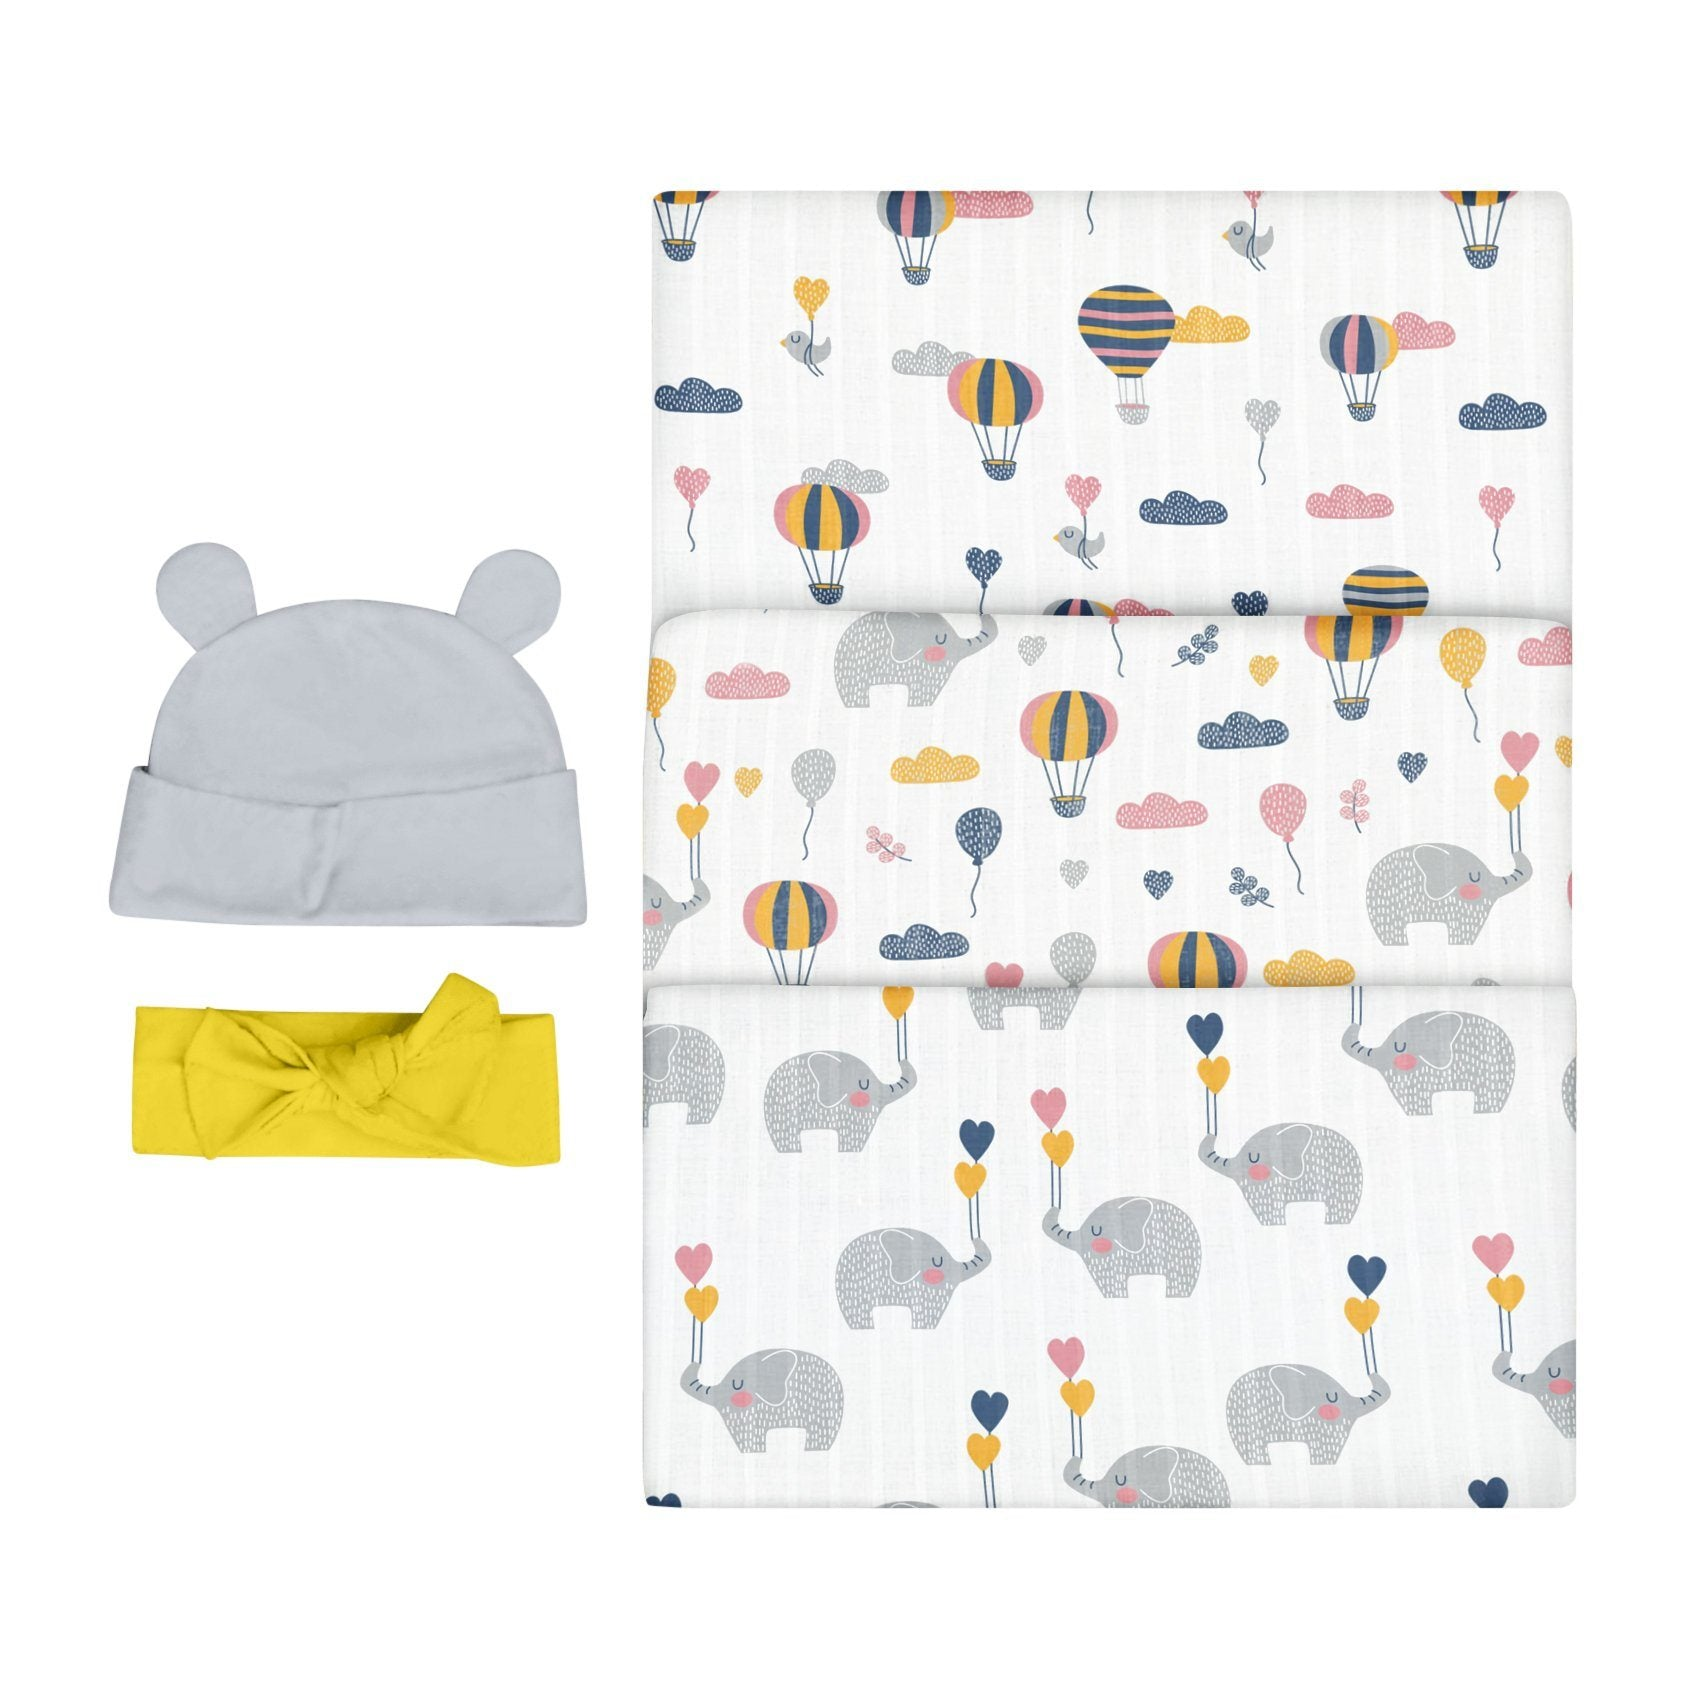 Bubzi Co Newborn Swaddle Set - Elephant Nursery Swaddles Bubzi Co